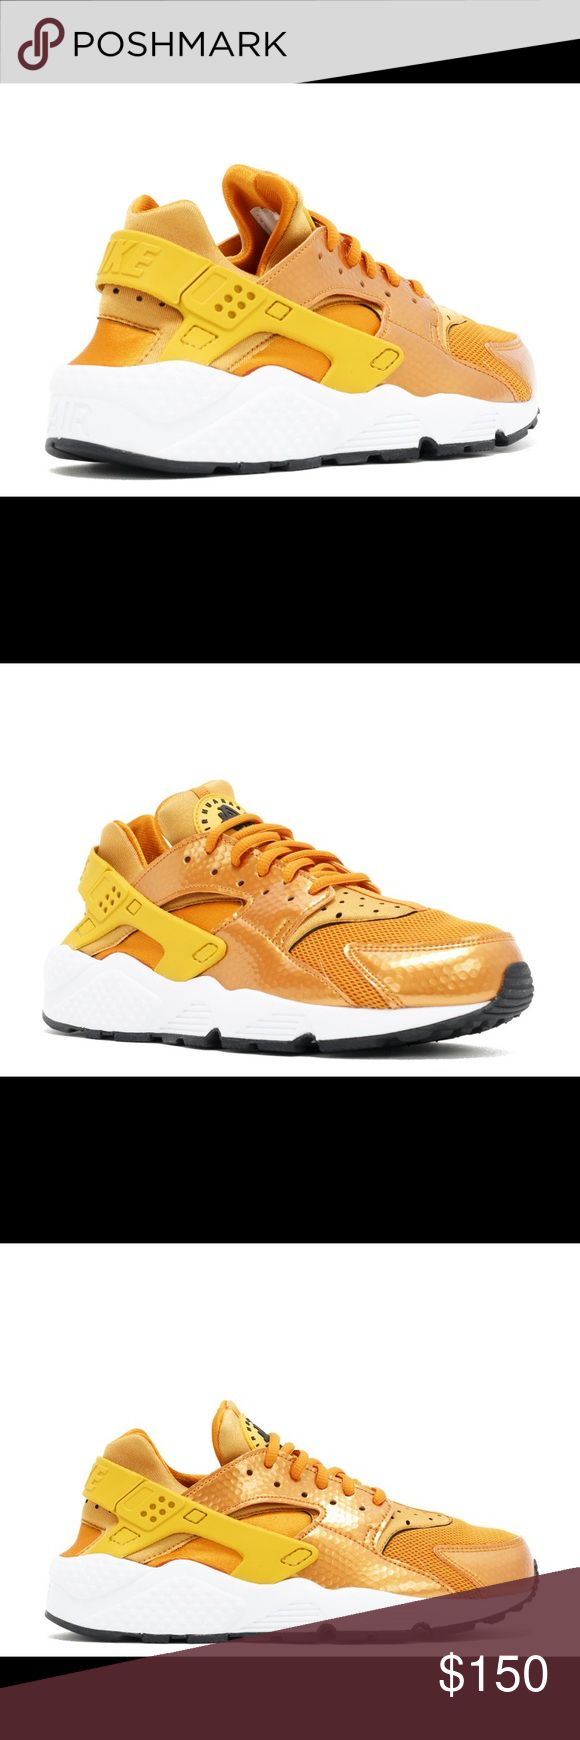 Nike Huaraches Brand new never warn sunset, gold dart-white-black   2016!! Great pop of color and super comfortable. Comment below with any questions 💕💕 Price is firm! Nike Shoes Athletic Shoes